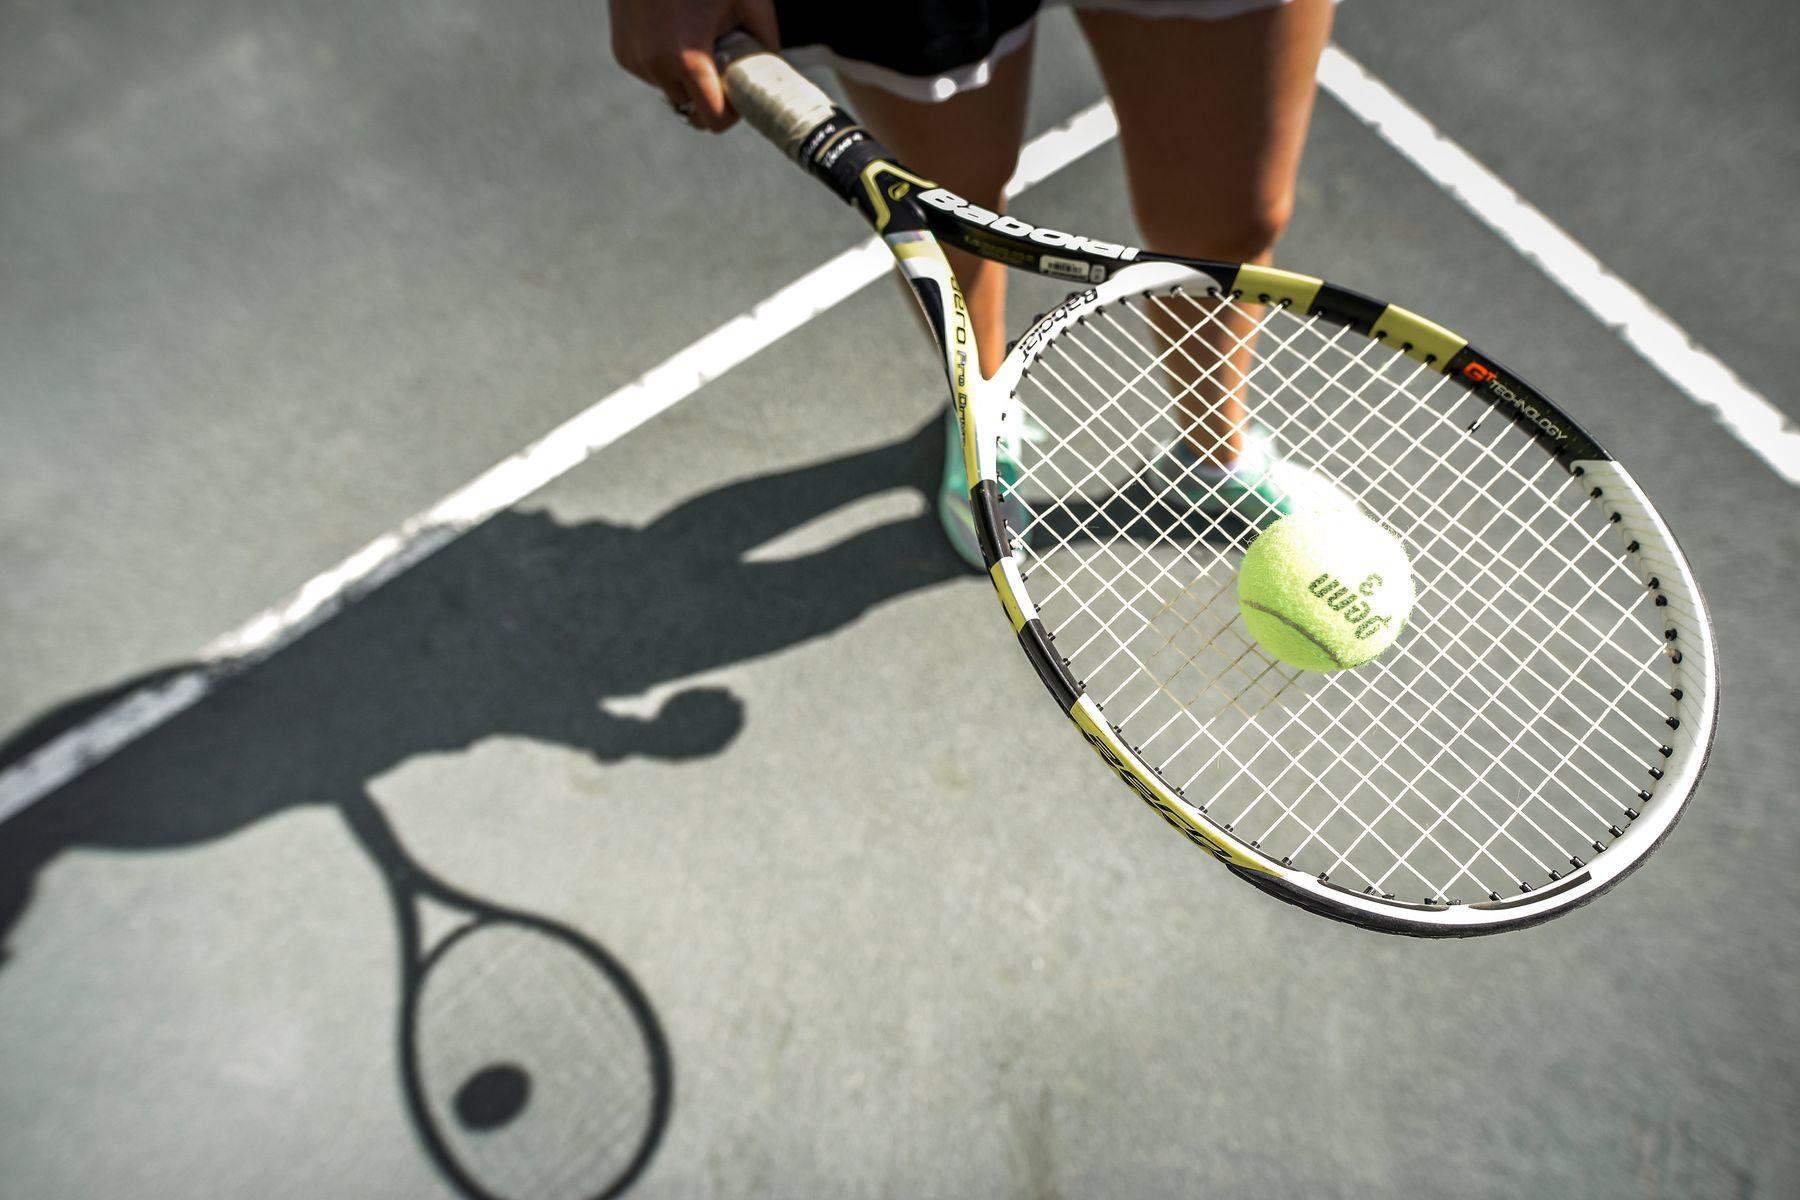 Close photo of tennis ball resting on a racquet.